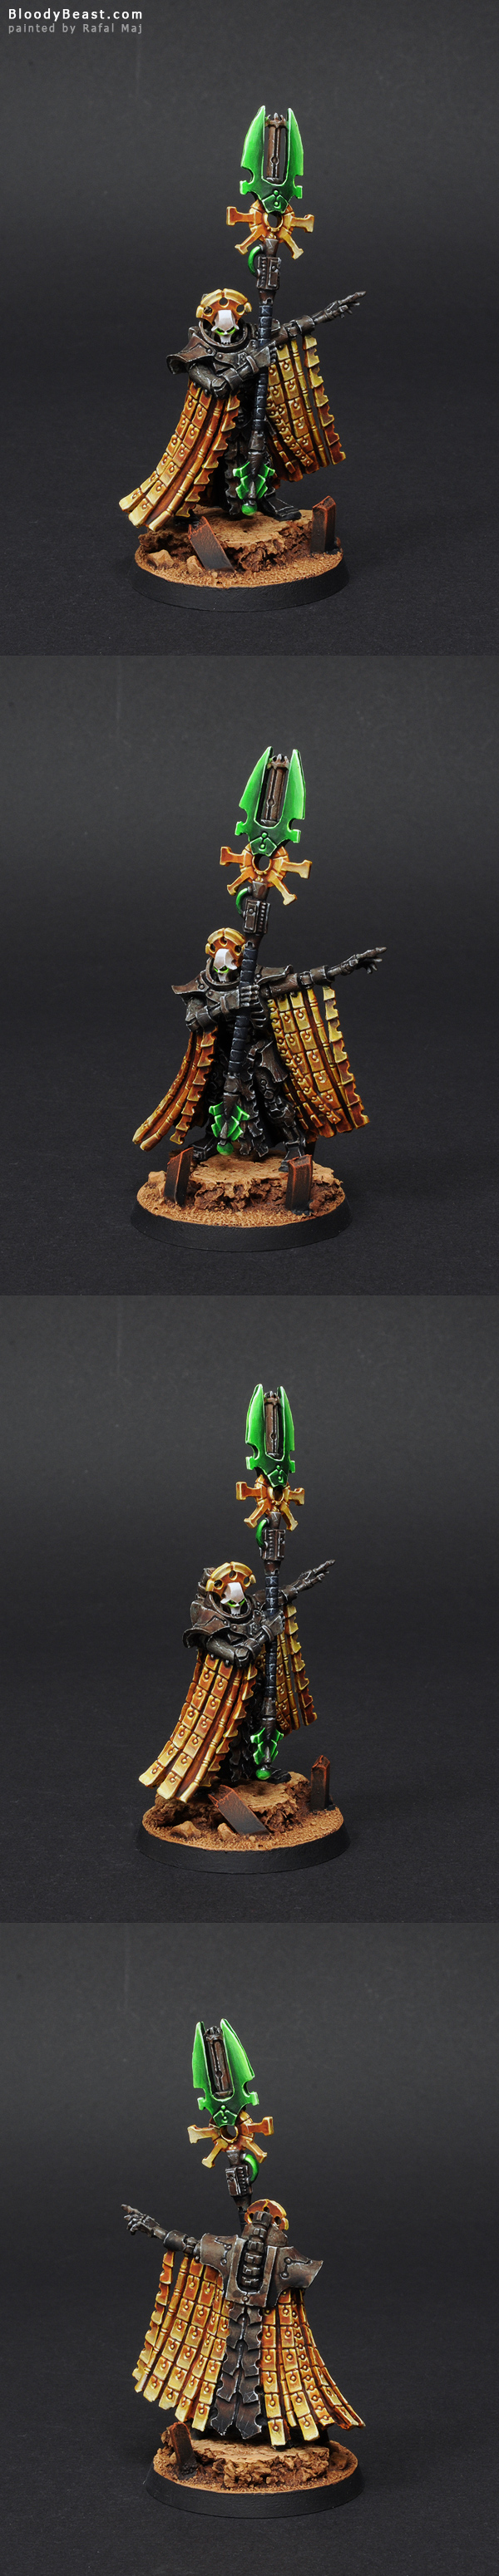 Necron Nemesor Zahndrekh painted by Rafal Maj (BloodyBeast.com)